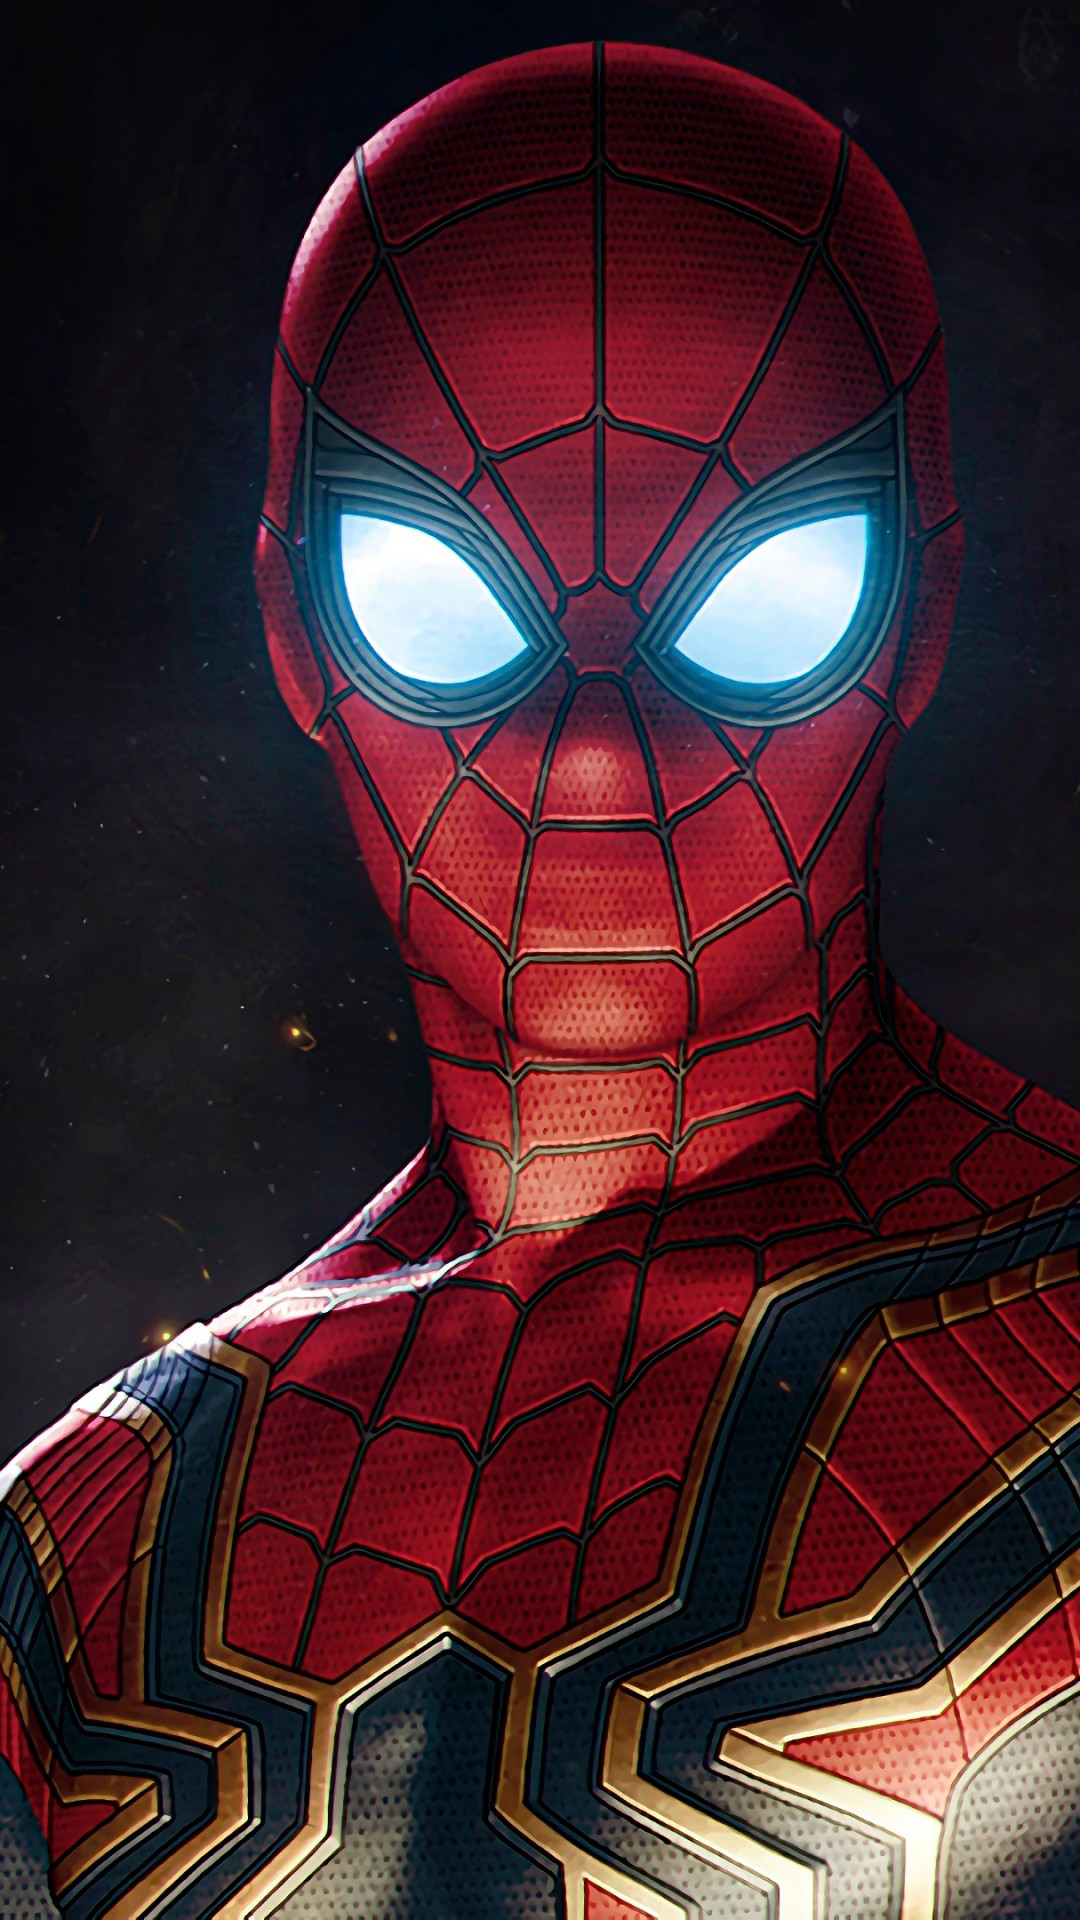 Spider Man In Avengers Infinity War 4k Wallpapers Hd Wallpapers Hd Backgrounds Tumblr Backgrounds Images Pictures